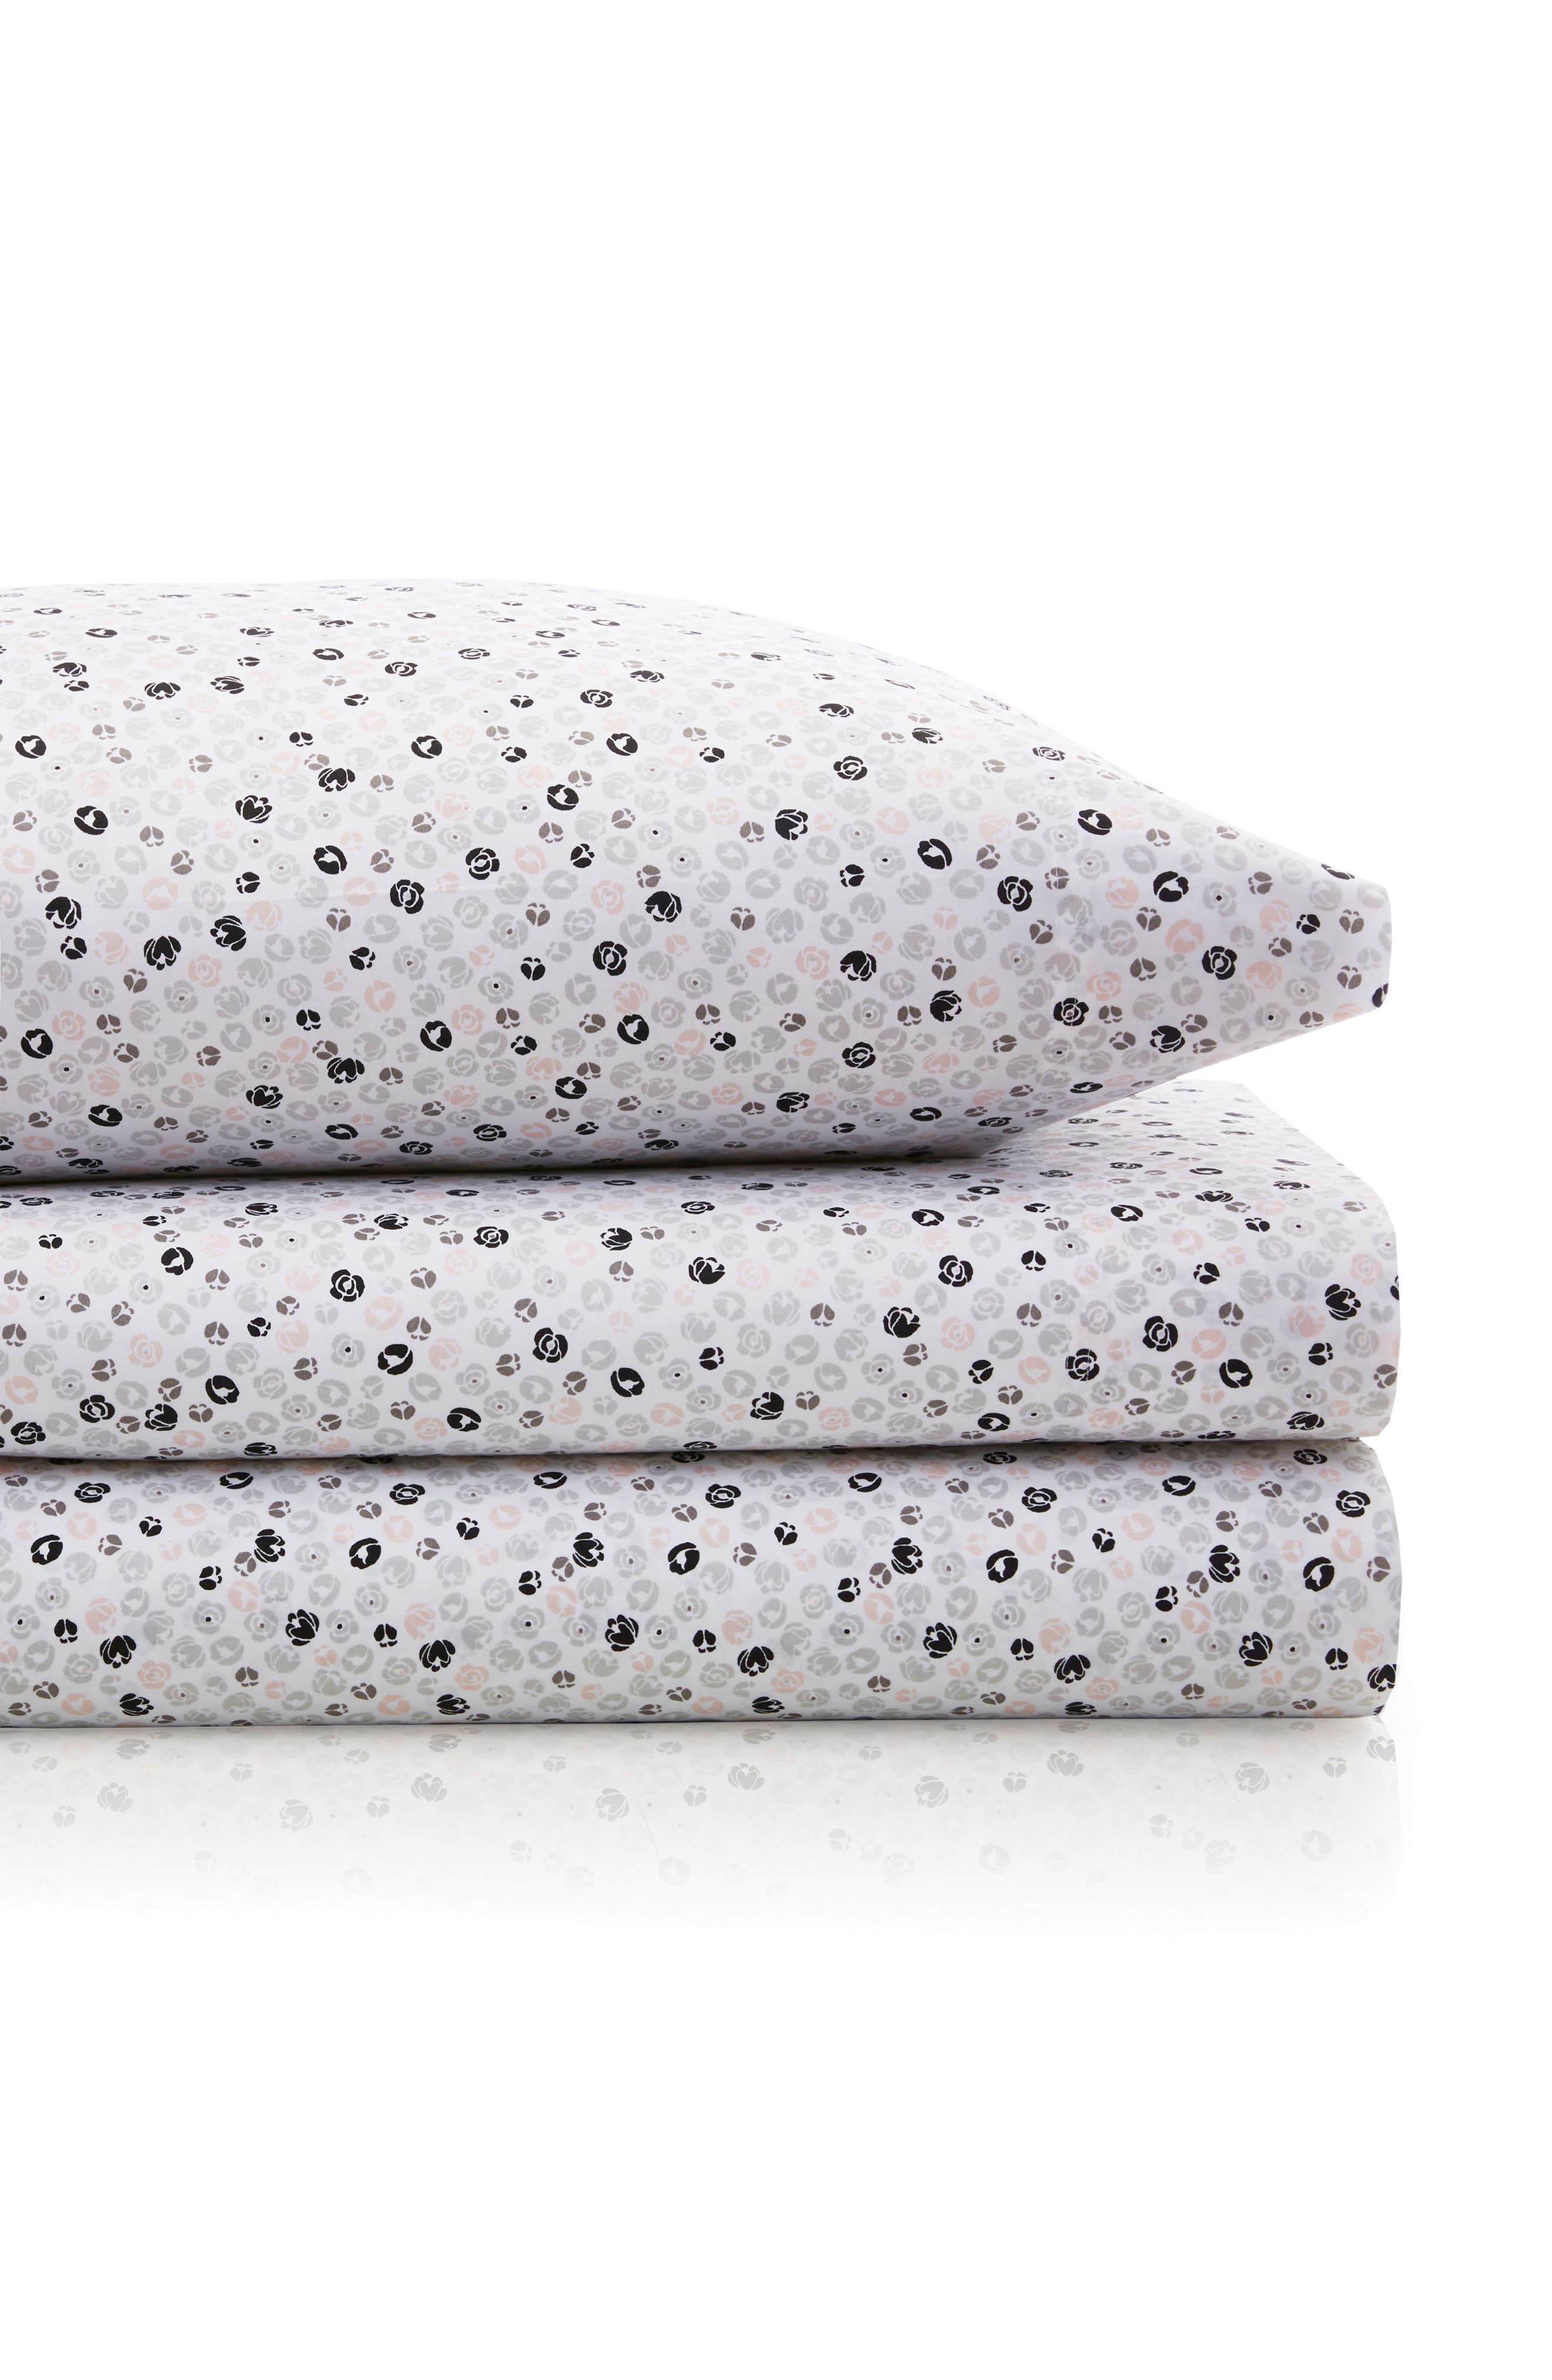 BCBGeneration Ditsy Floral 200 Thread Count Sheet Set